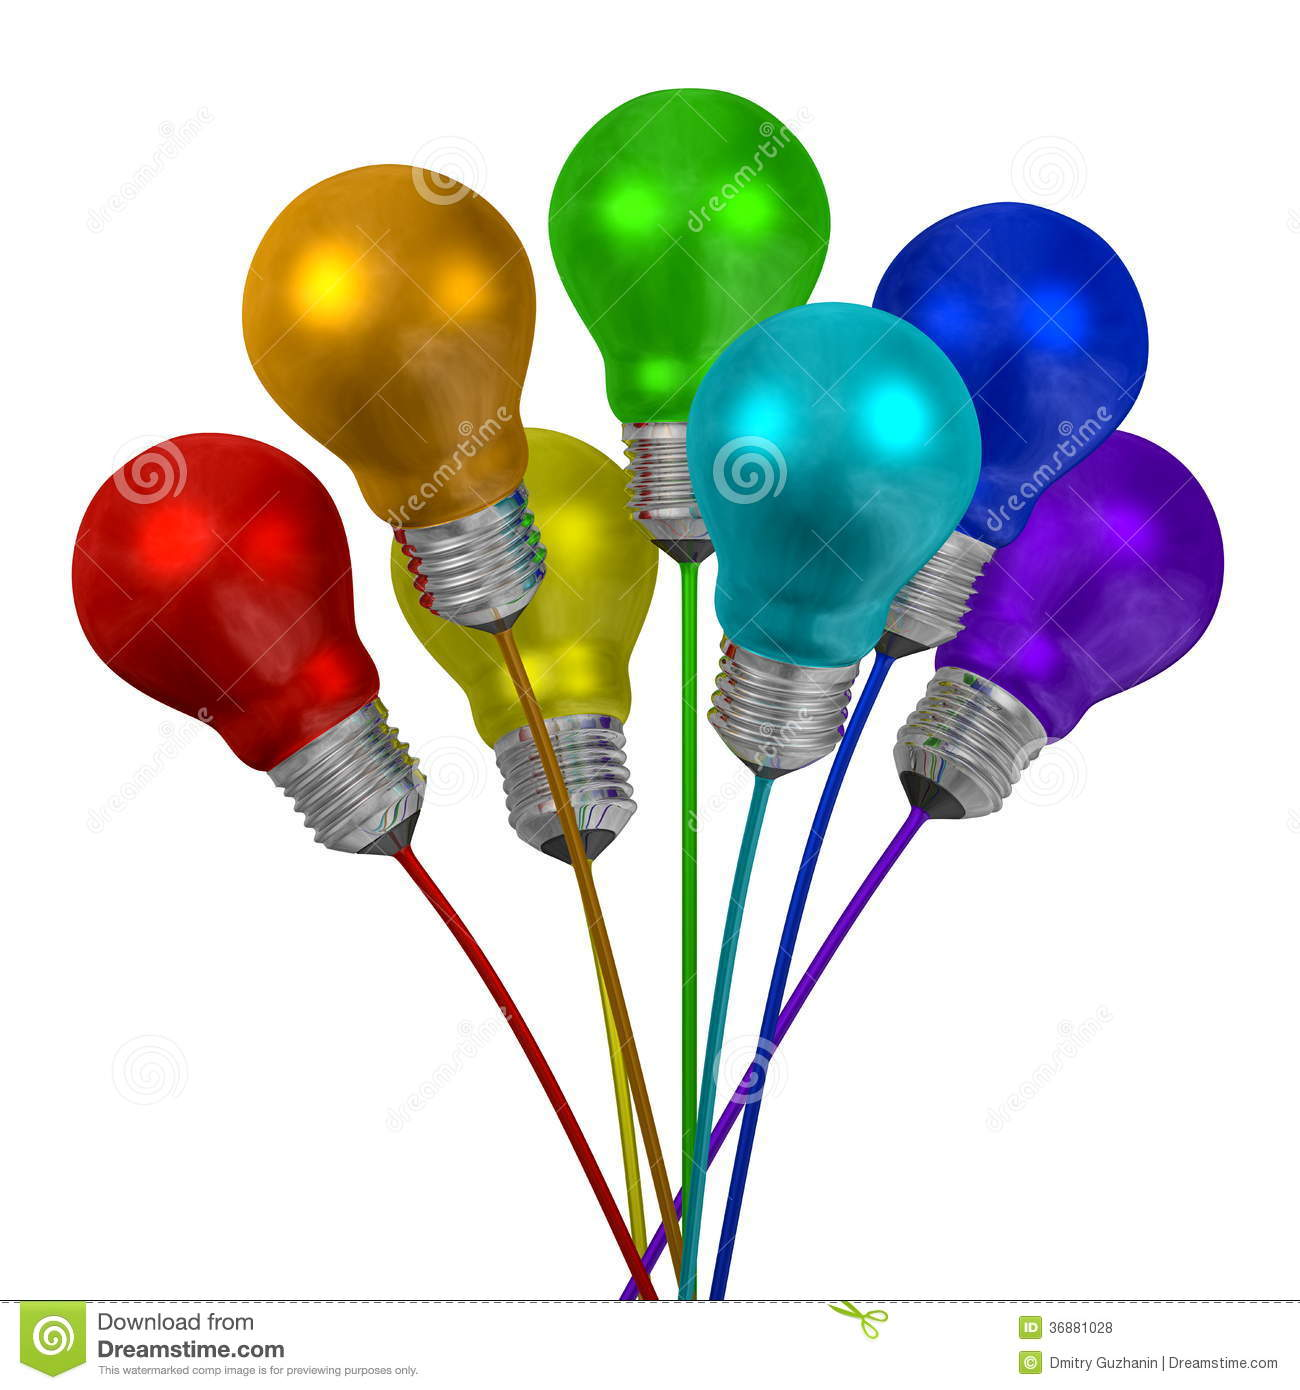 Bouquet Of Many Colored Light Bulbs On Wires Of Different Colors Stock Illustration Image